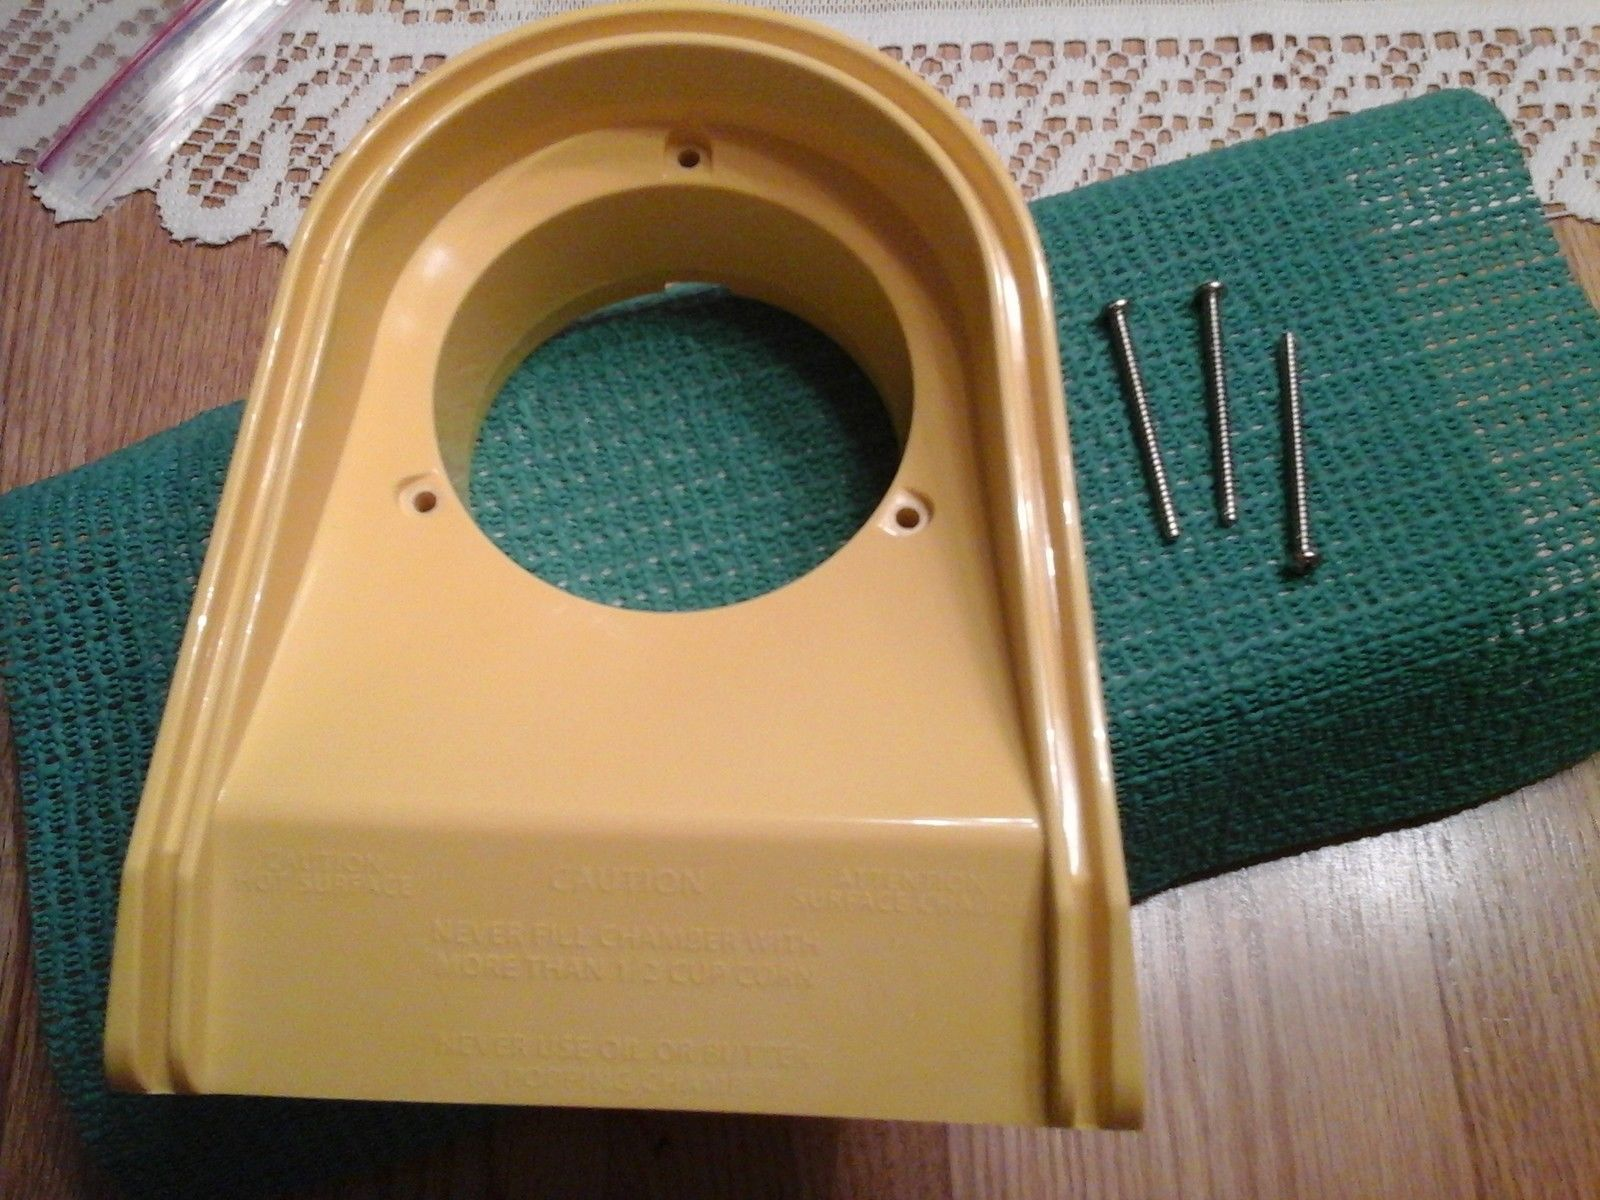 Primary image for part for presto pop lite air popper yellow chute new with screws #04820